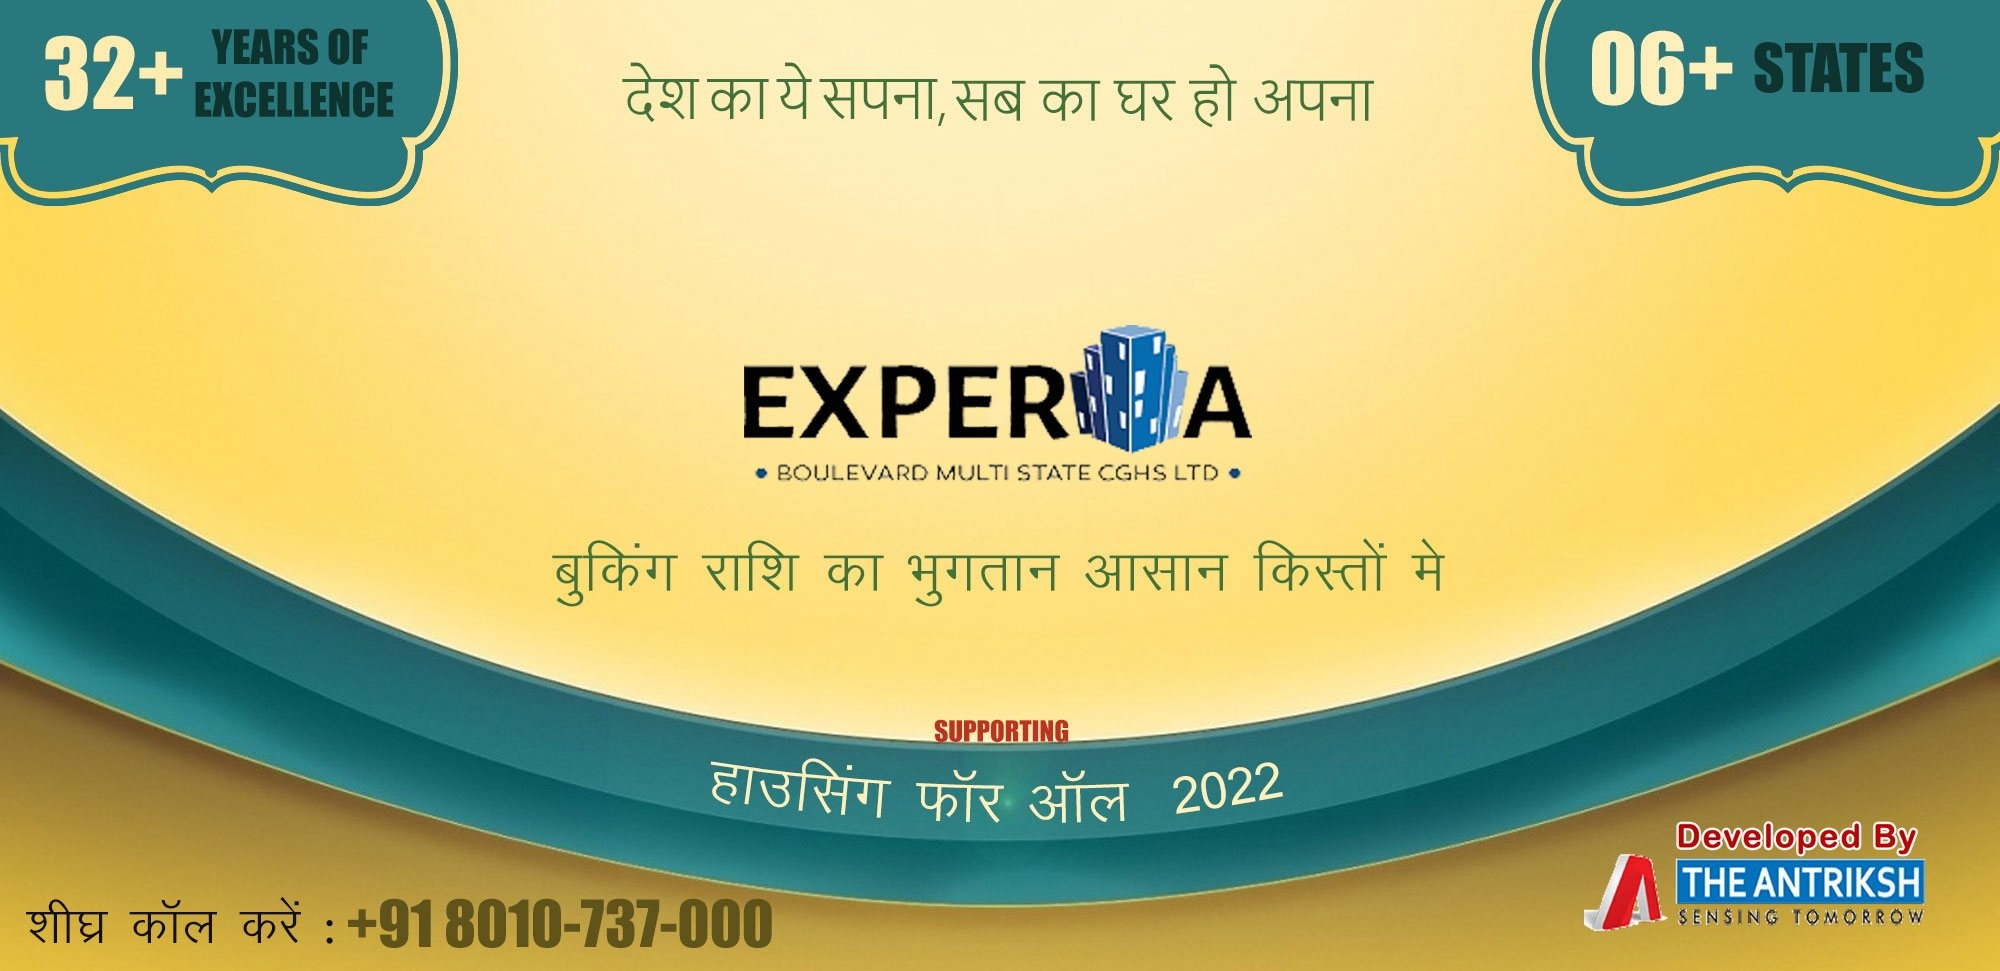 Experia Boulevard  CGHS (@experiaboulevardscghs) Cover Image